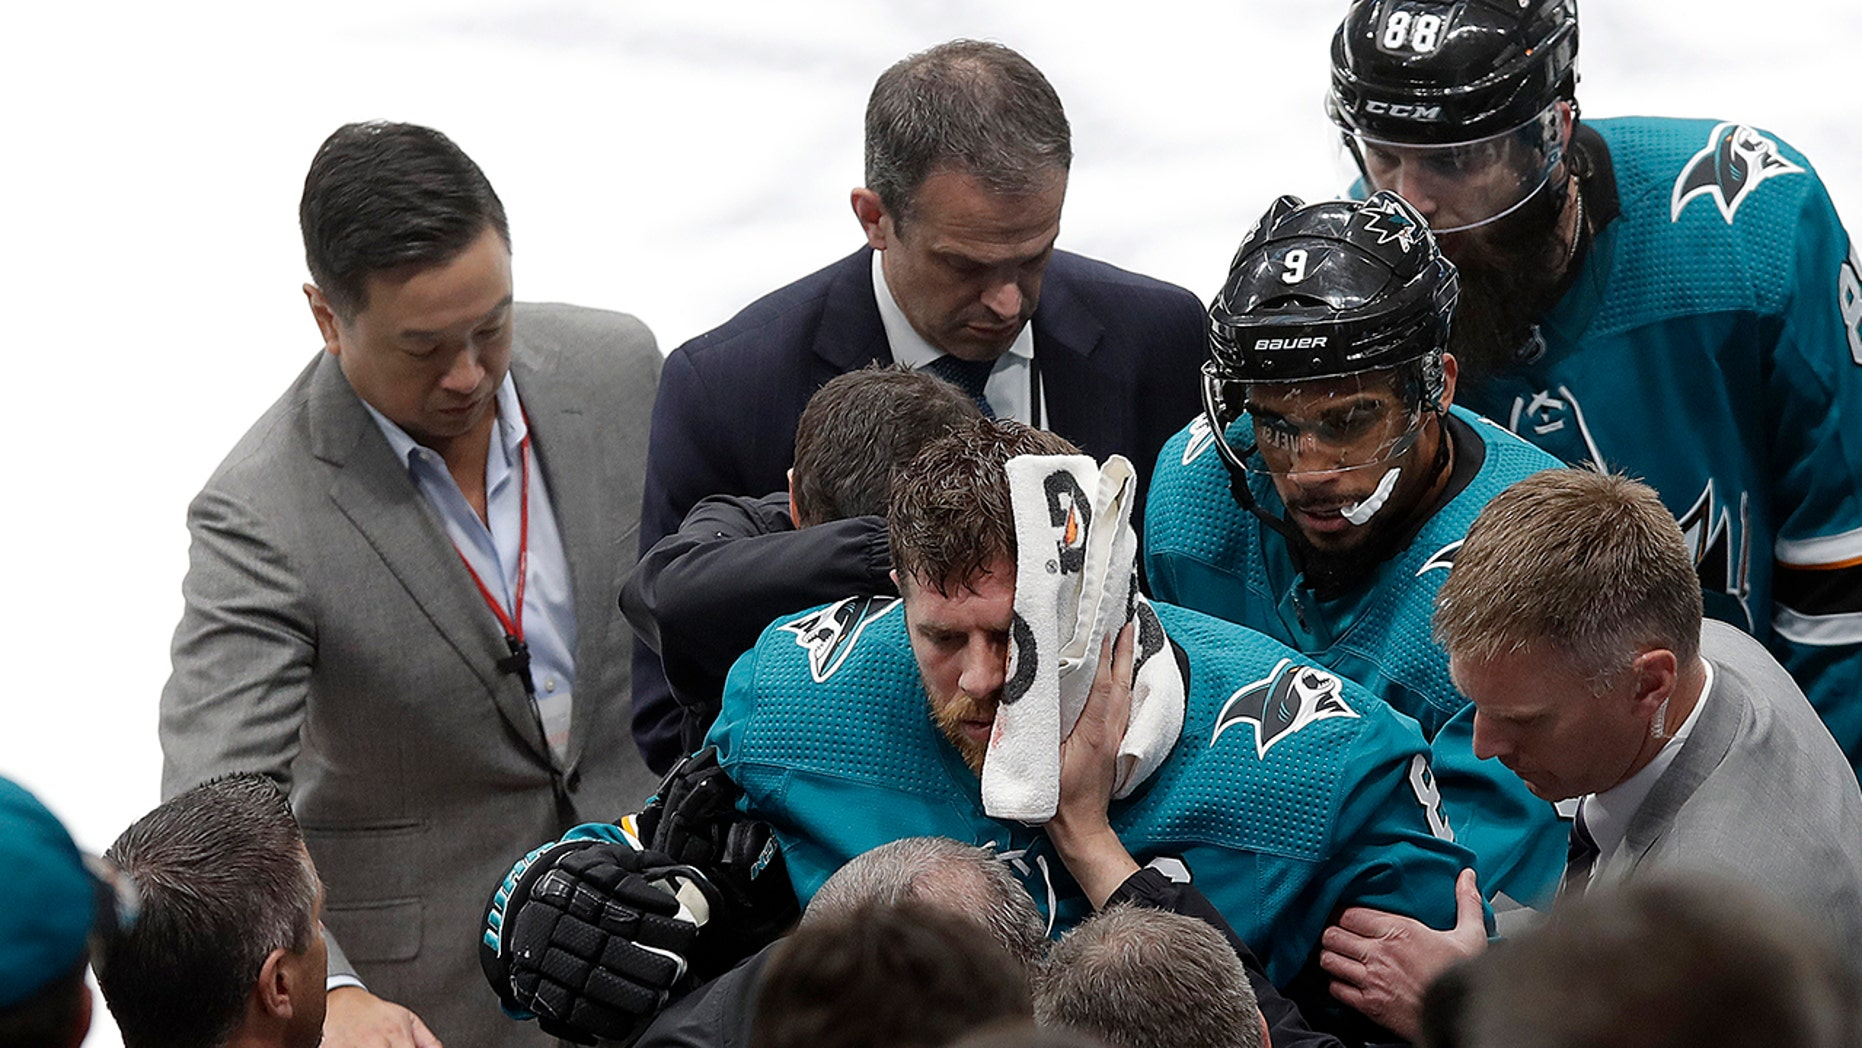 San Jose Sharks center Joe Pavelski, bottom center, is helped off the ice during the third period of Game 7 of an NHL hockey first-round playoff series against the Vegas Golden Knights in San Jose, Calif., Tuesday, April 23, 2019. (Associated Press)